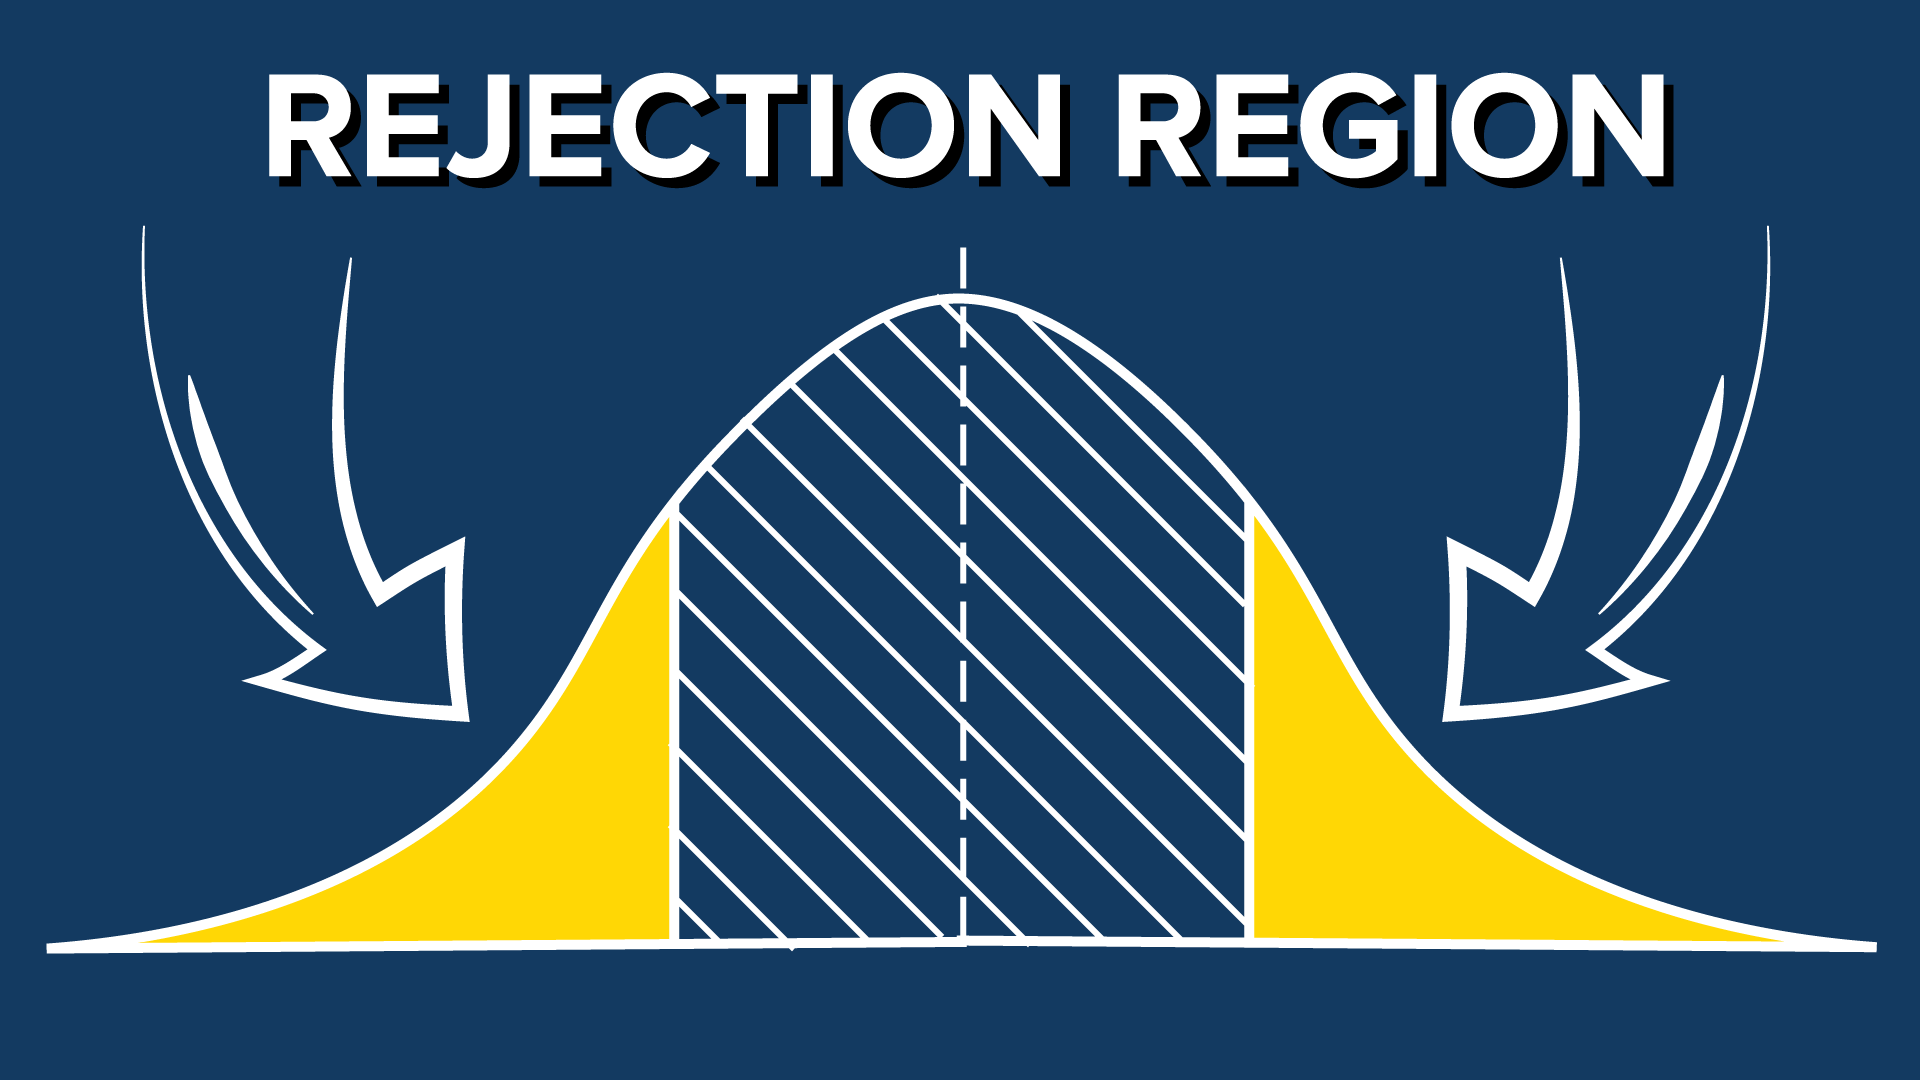 Hypothesis Testing with Z-Test: Significance Level and Rejection Region